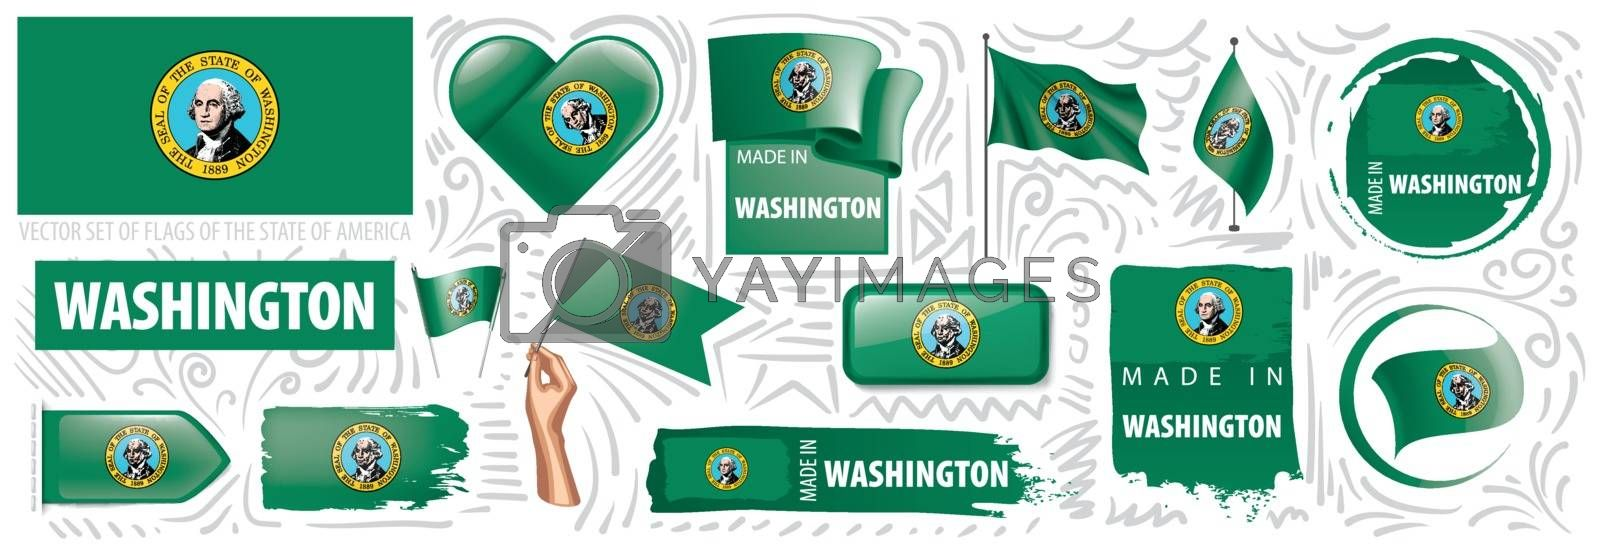 Vector set of flags of the American state of Washington in different designs.